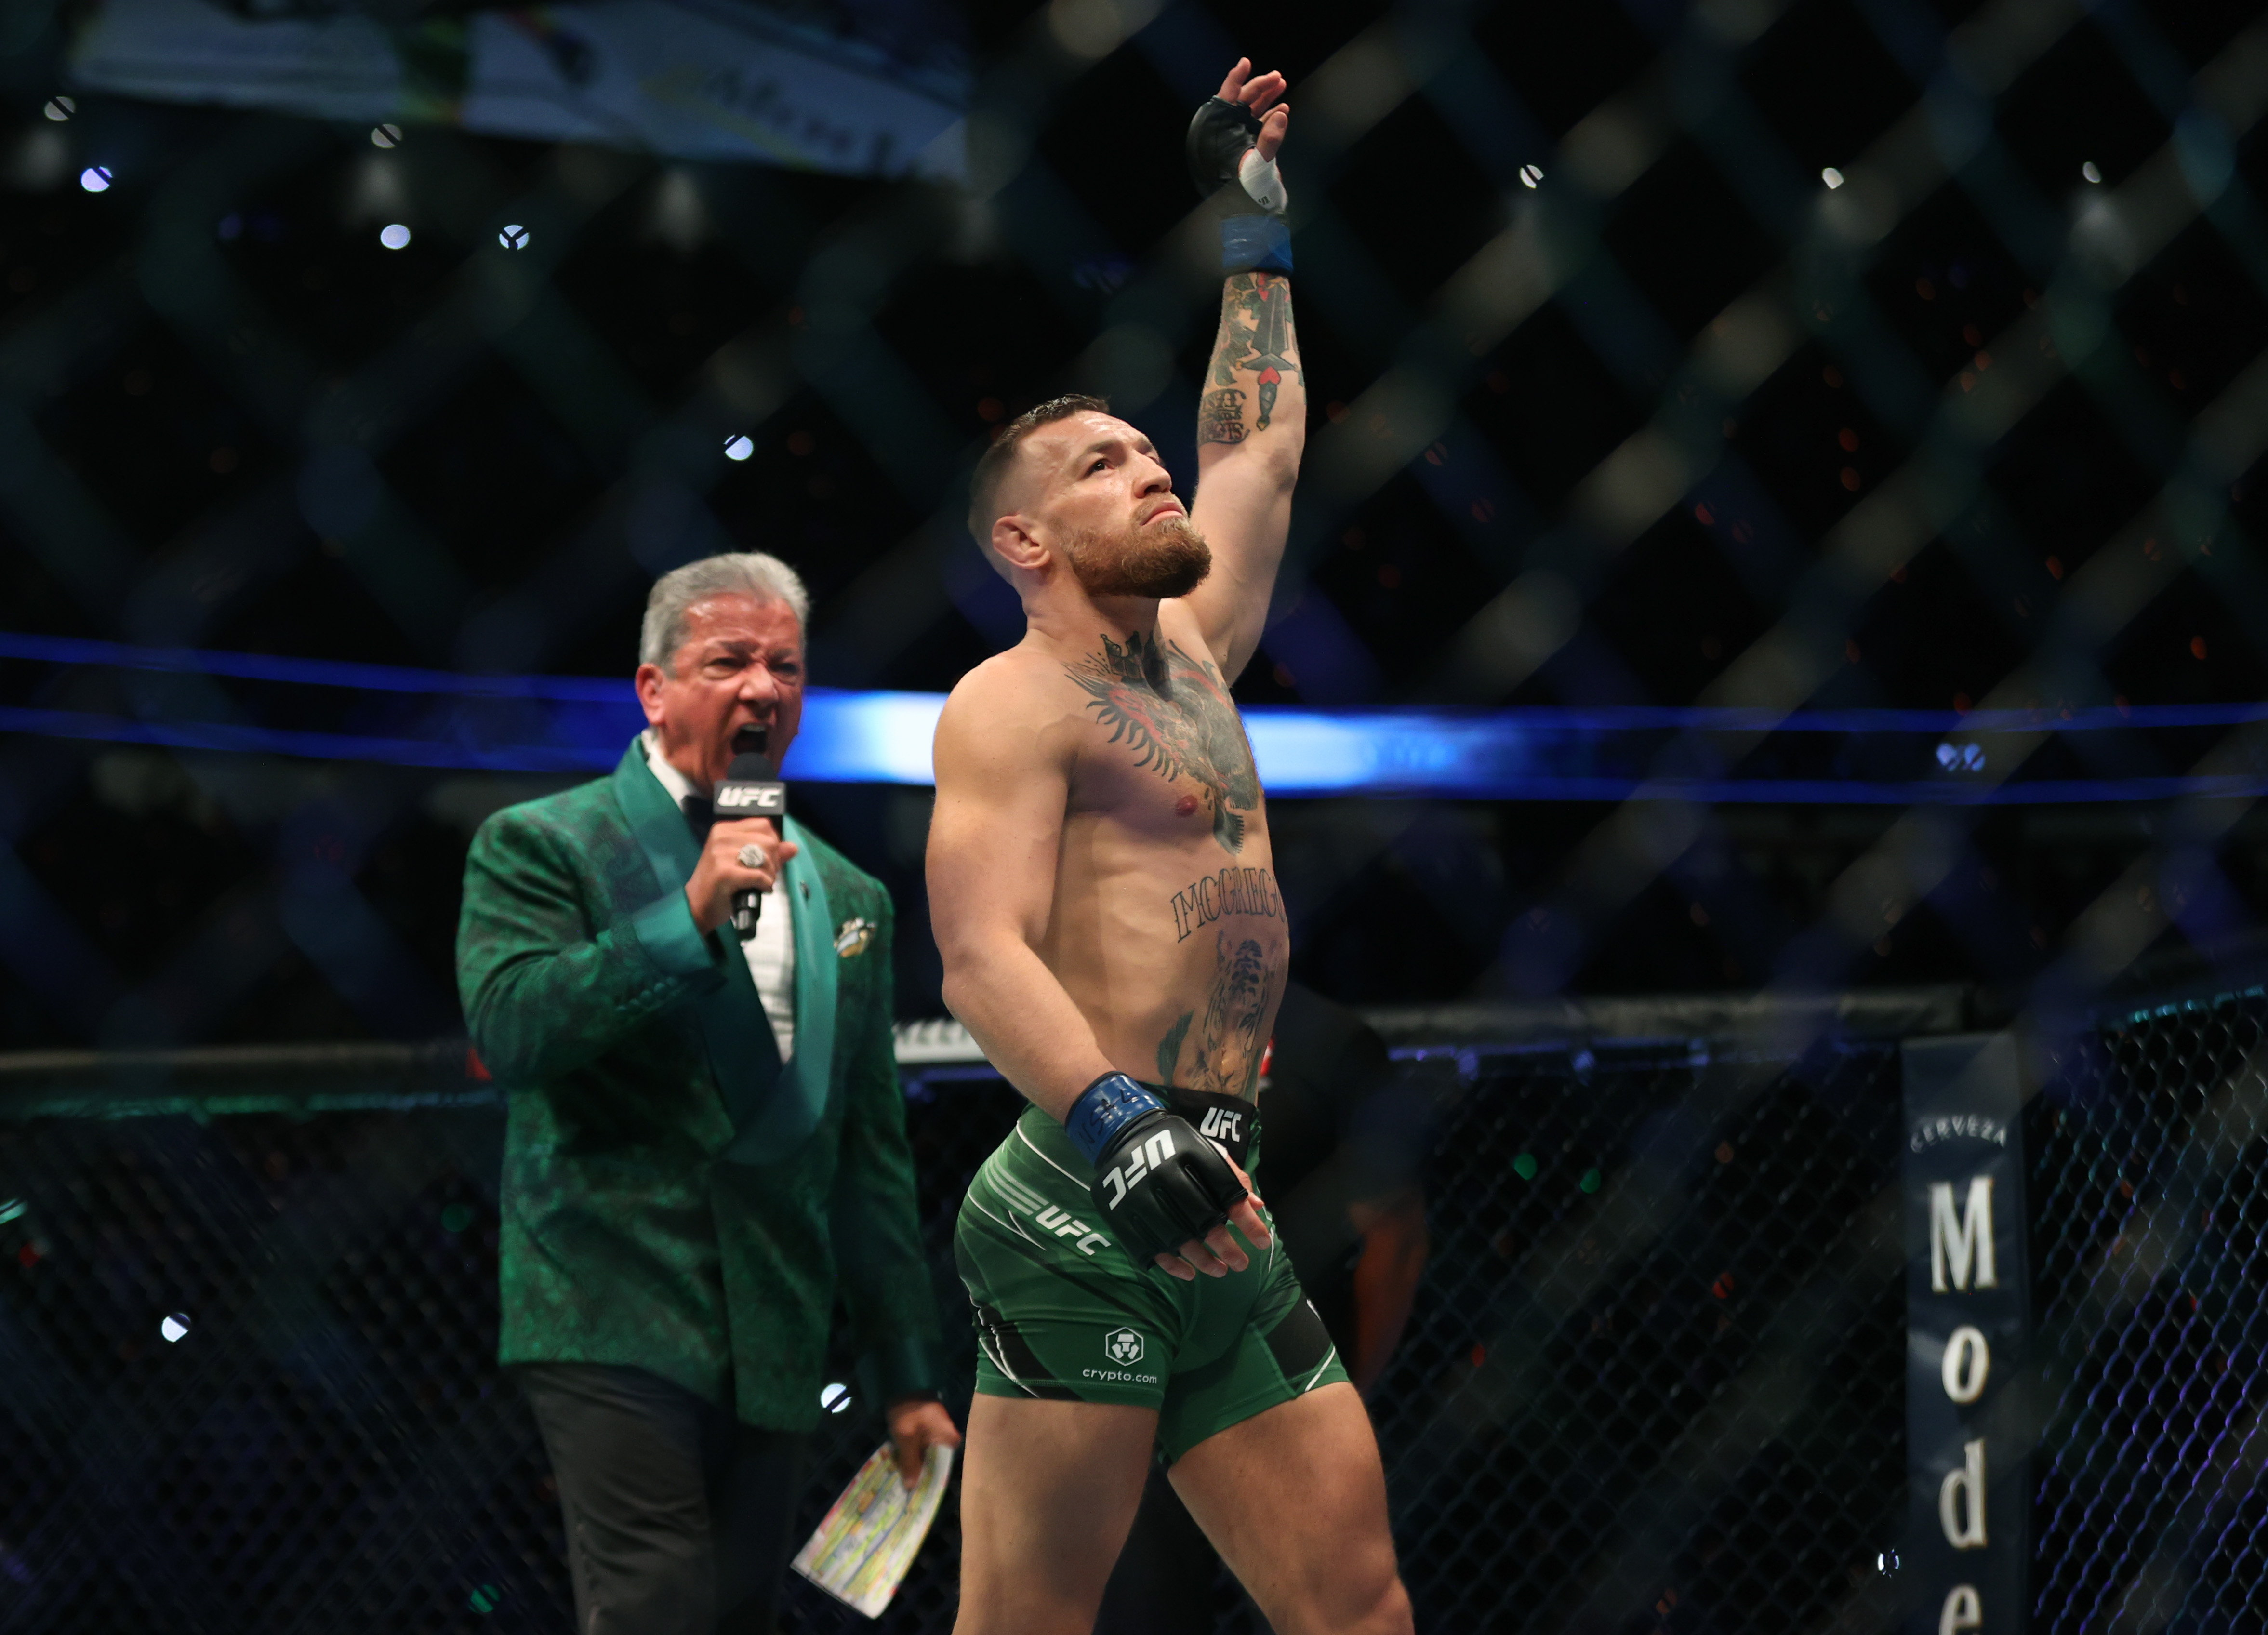 Conor McGregor before his fight with Dustin Poirier at UFC 264.